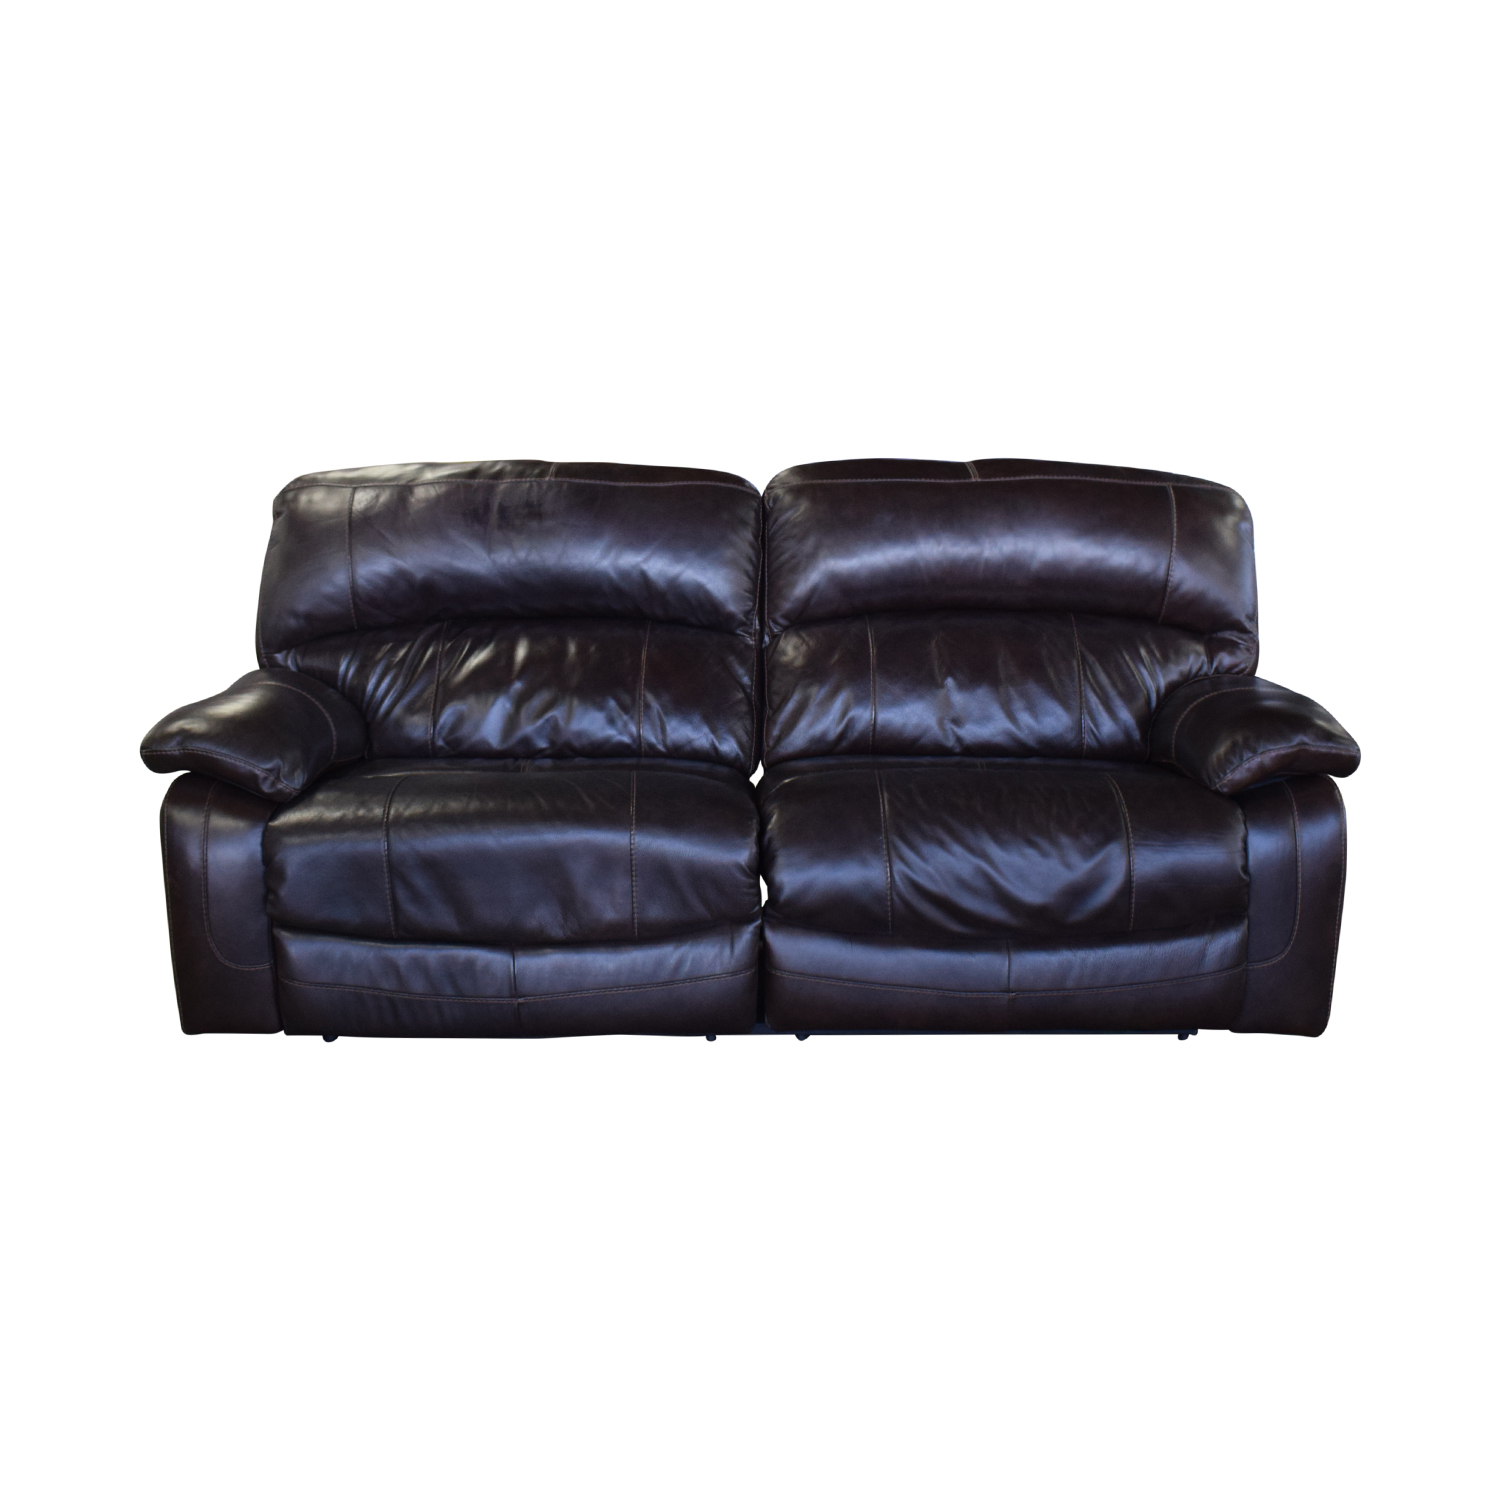 Ashley Furniture Ashley Furniture Sofa Recliner nj